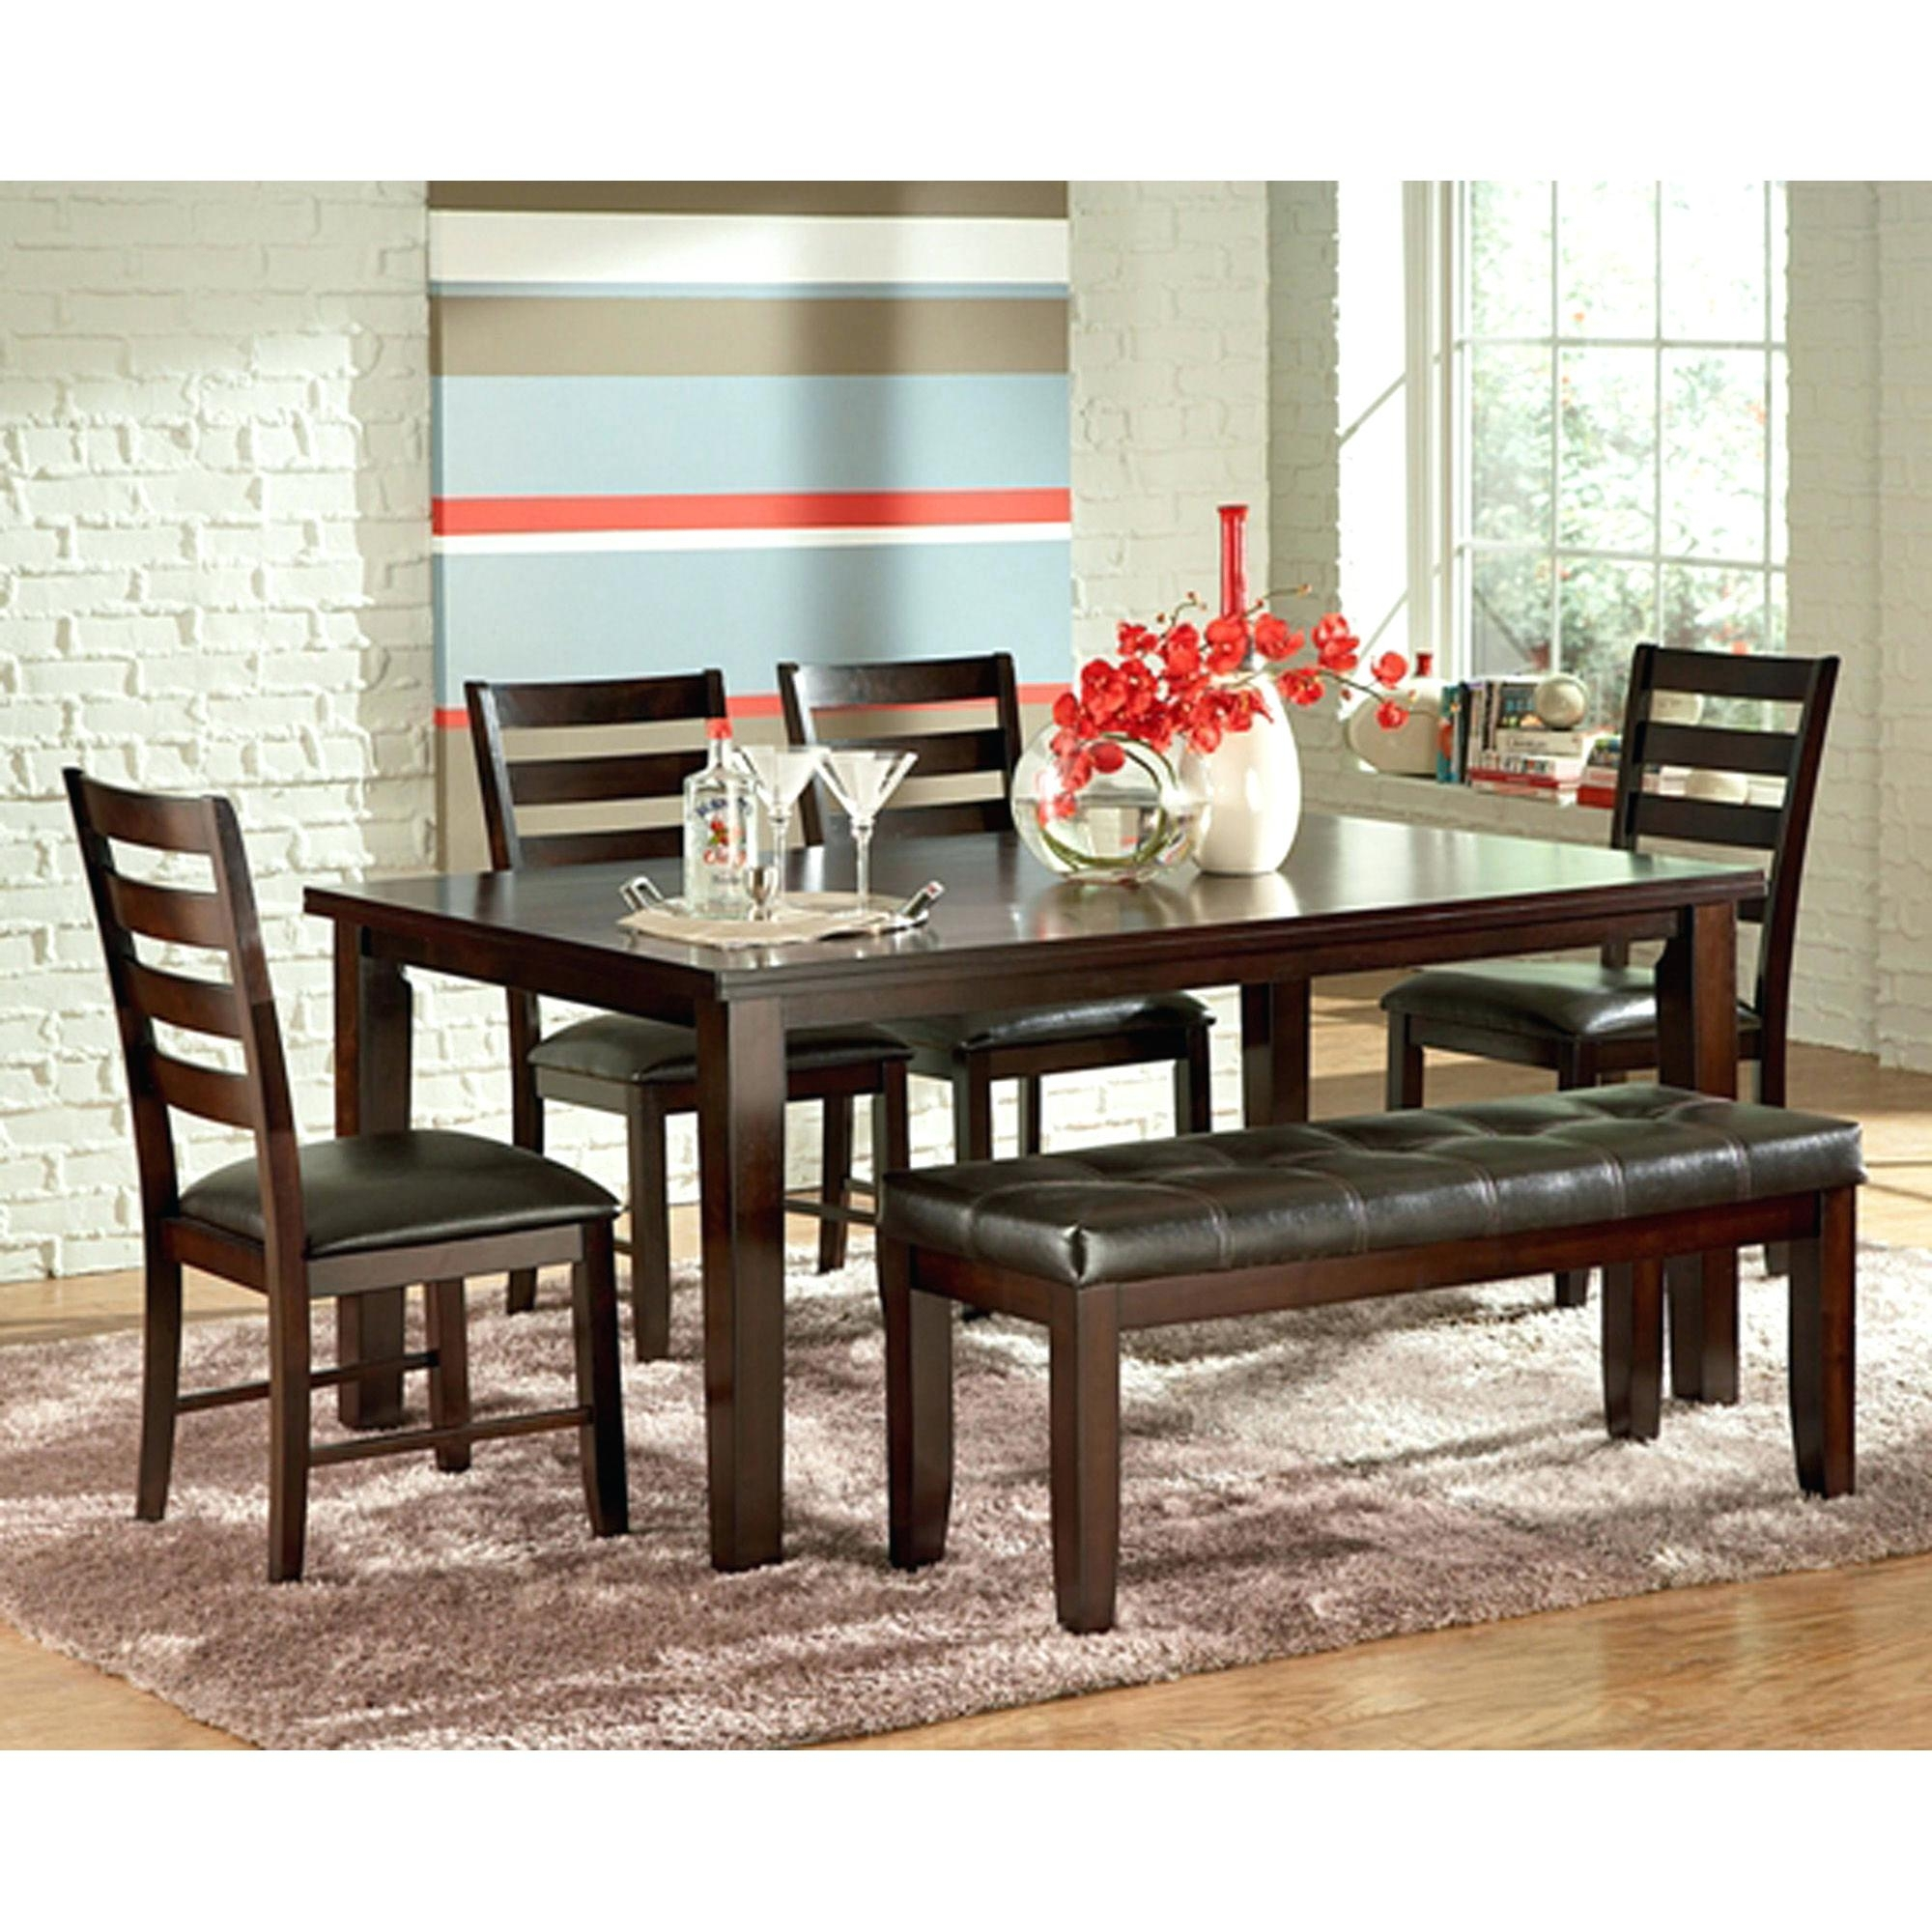 6 Piece Kitchen Table Mallard 6 Piece Extension Dining Set In Most Up To Date Mallard 6 Piece Extension Dining Sets (Photo 20 of 20)